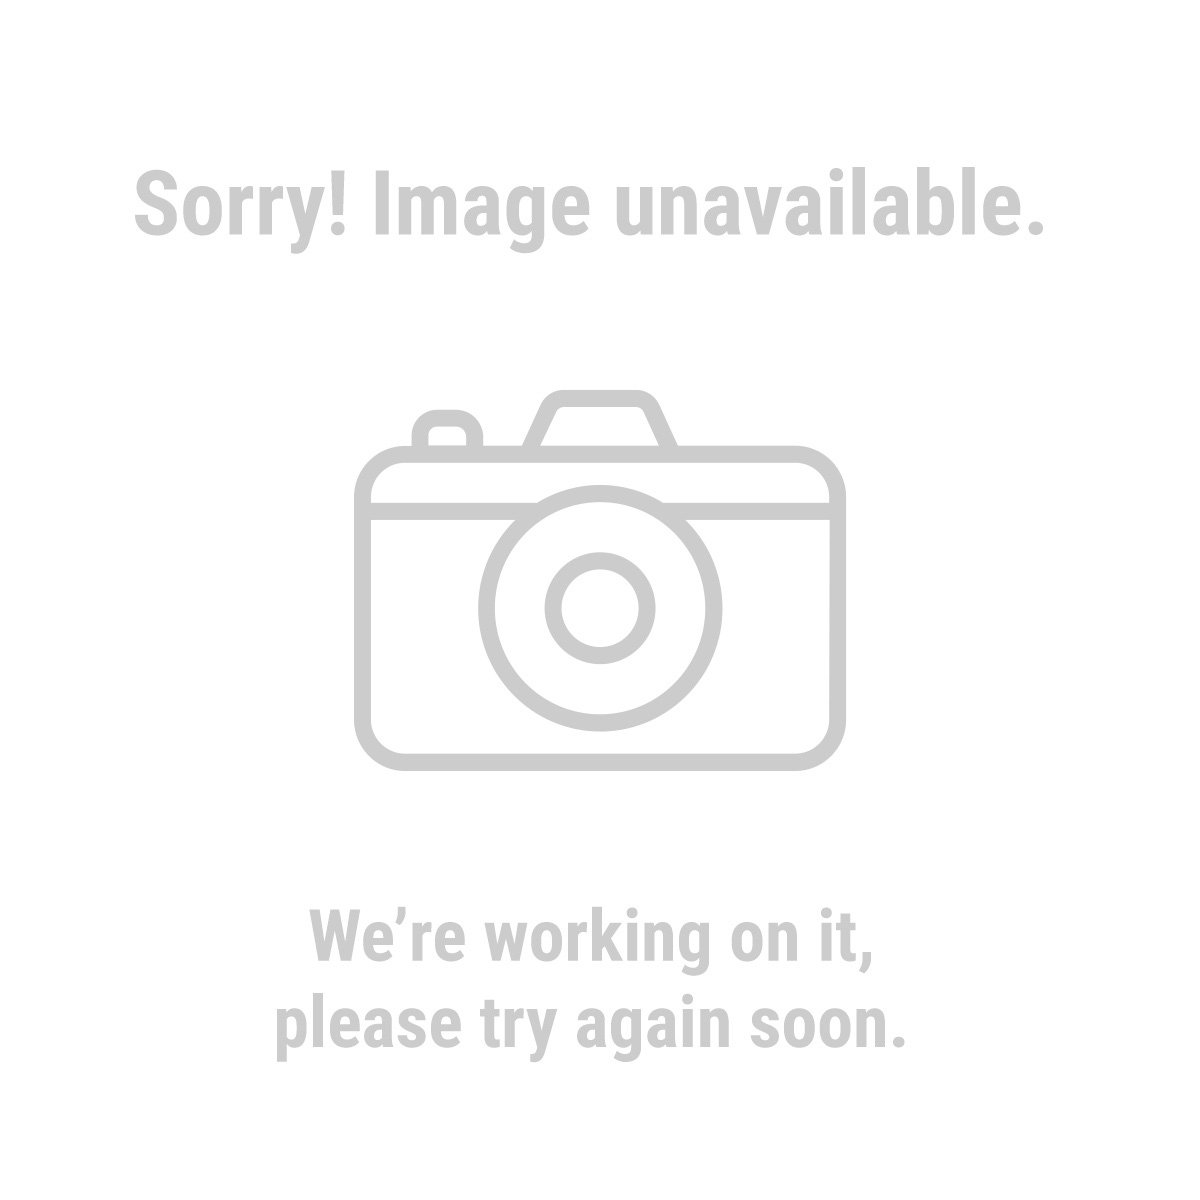 Haul-Master® 60397 1000 Lb. Steel Loading Ramps, Set of Two